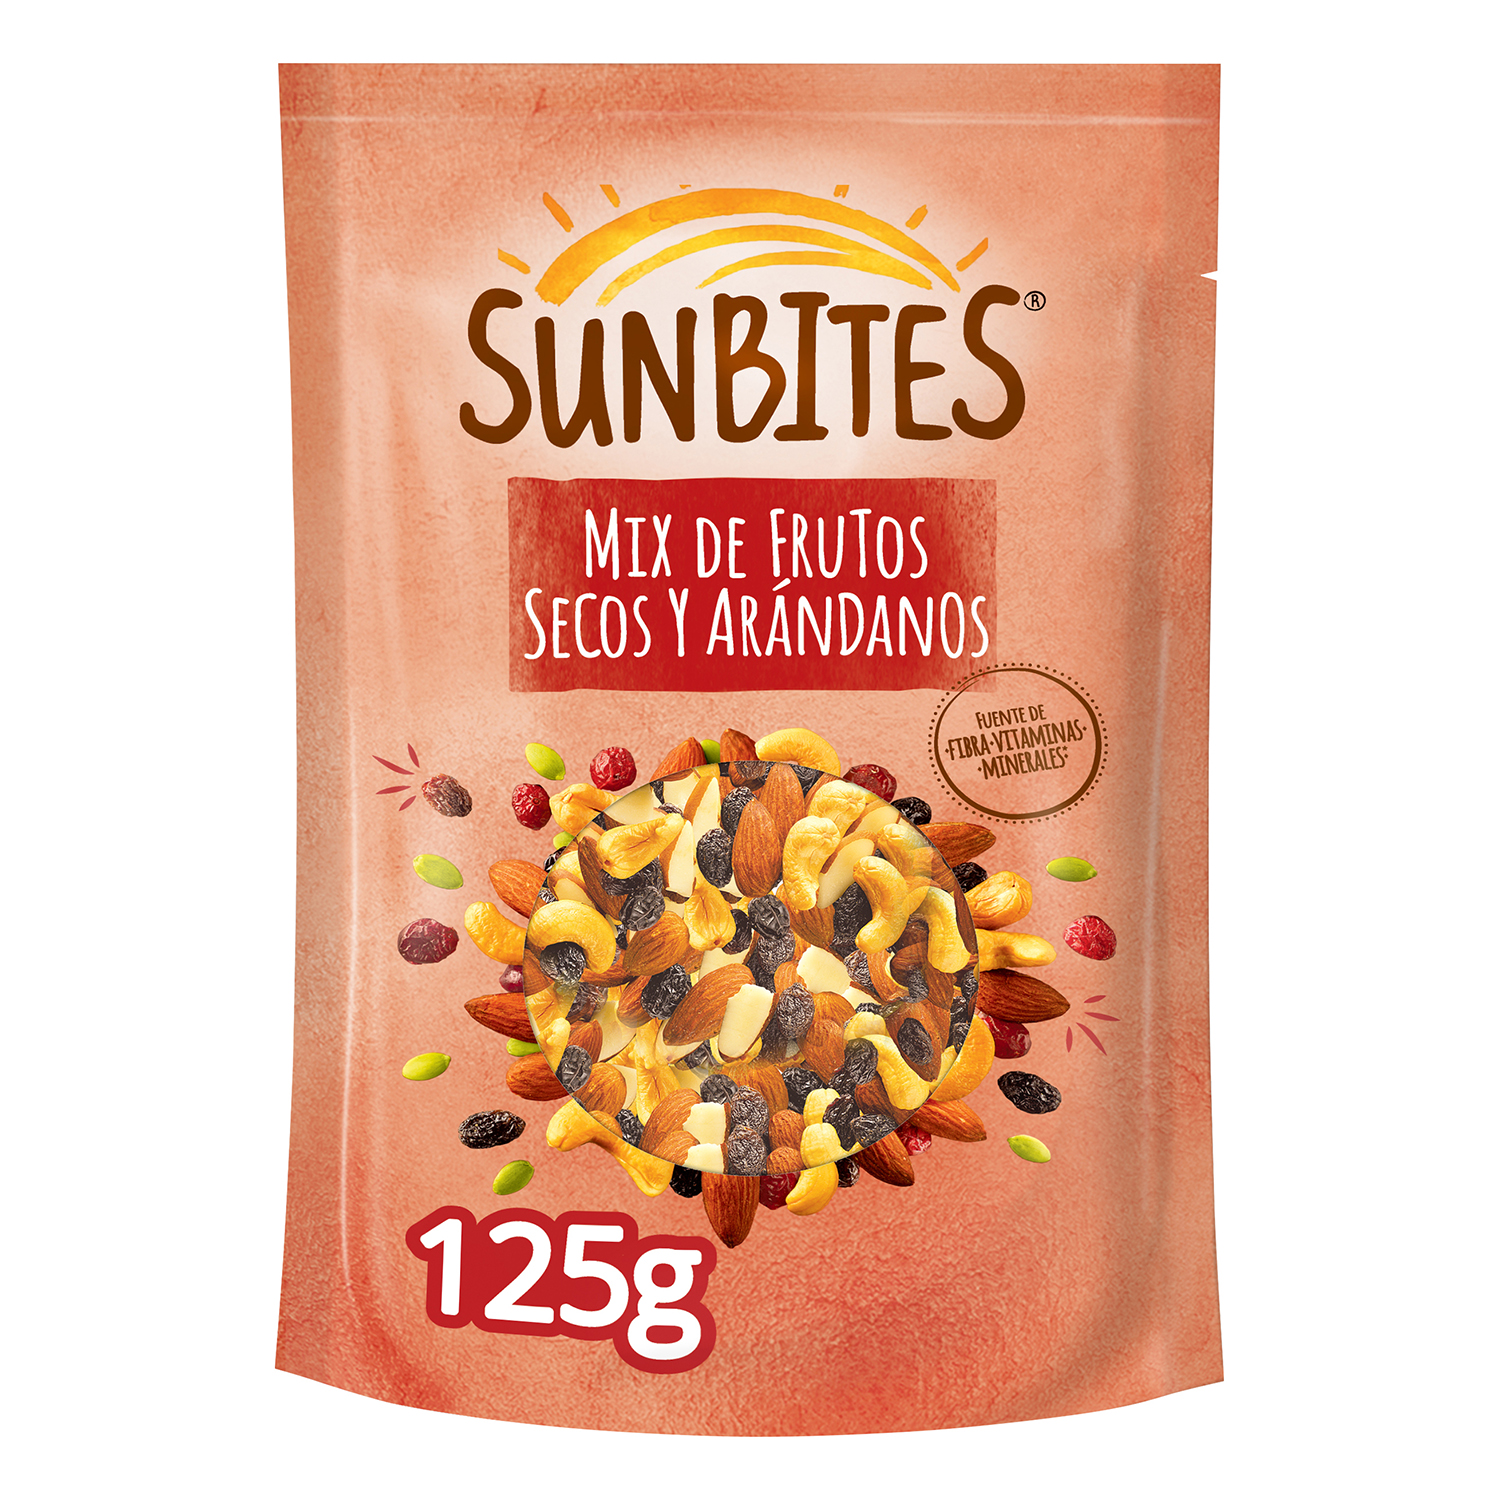 Cocktail de frutos secos y arándanos Sunbites 125 g.